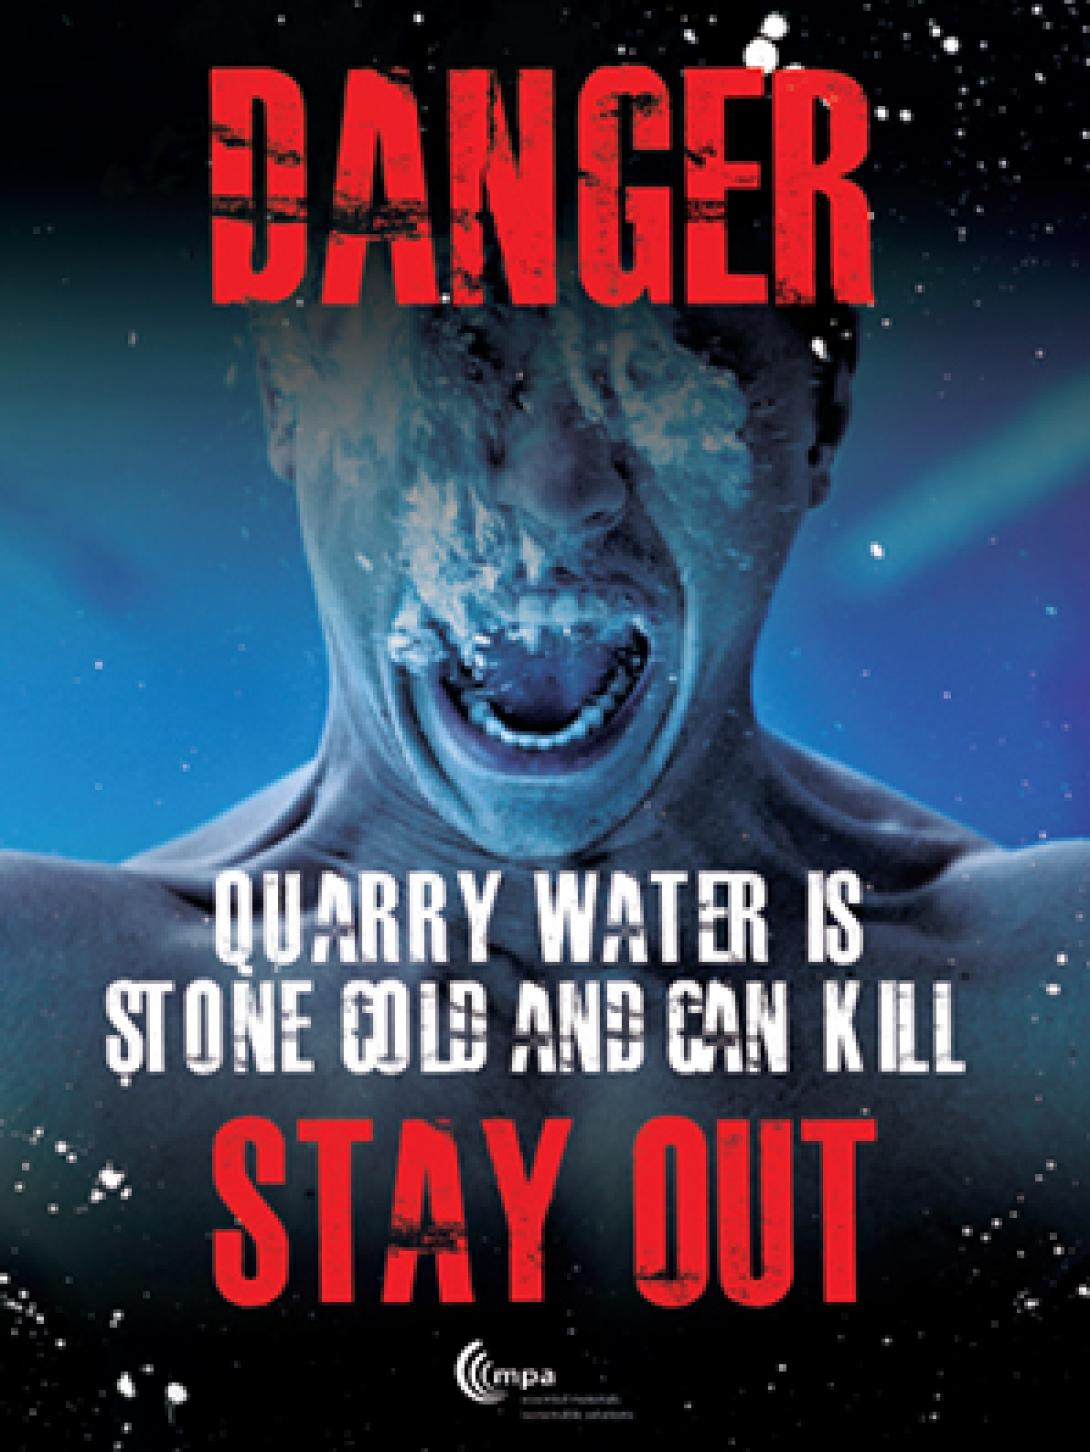 Stay safe... Stay out of quarries.